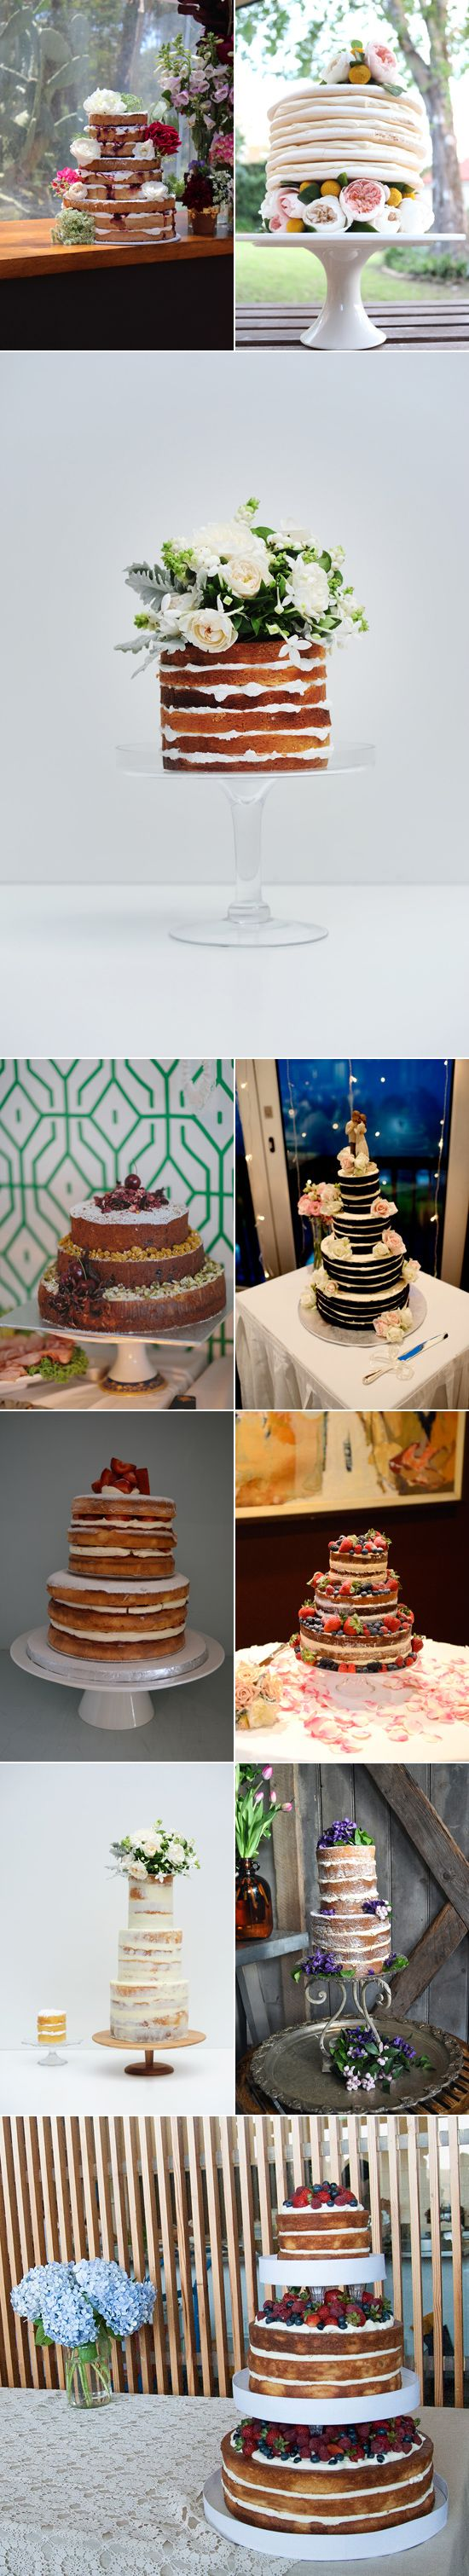 "I have been loving the new idea of ""naked"" wedding cakes. Not everybody is a lover of fondant, ganache and butter cream and there is something utterly beautiful about layers upon layers of delicious cake oozing with delicious filling and topped with fresh blooms that makes me oh so very very hungry."